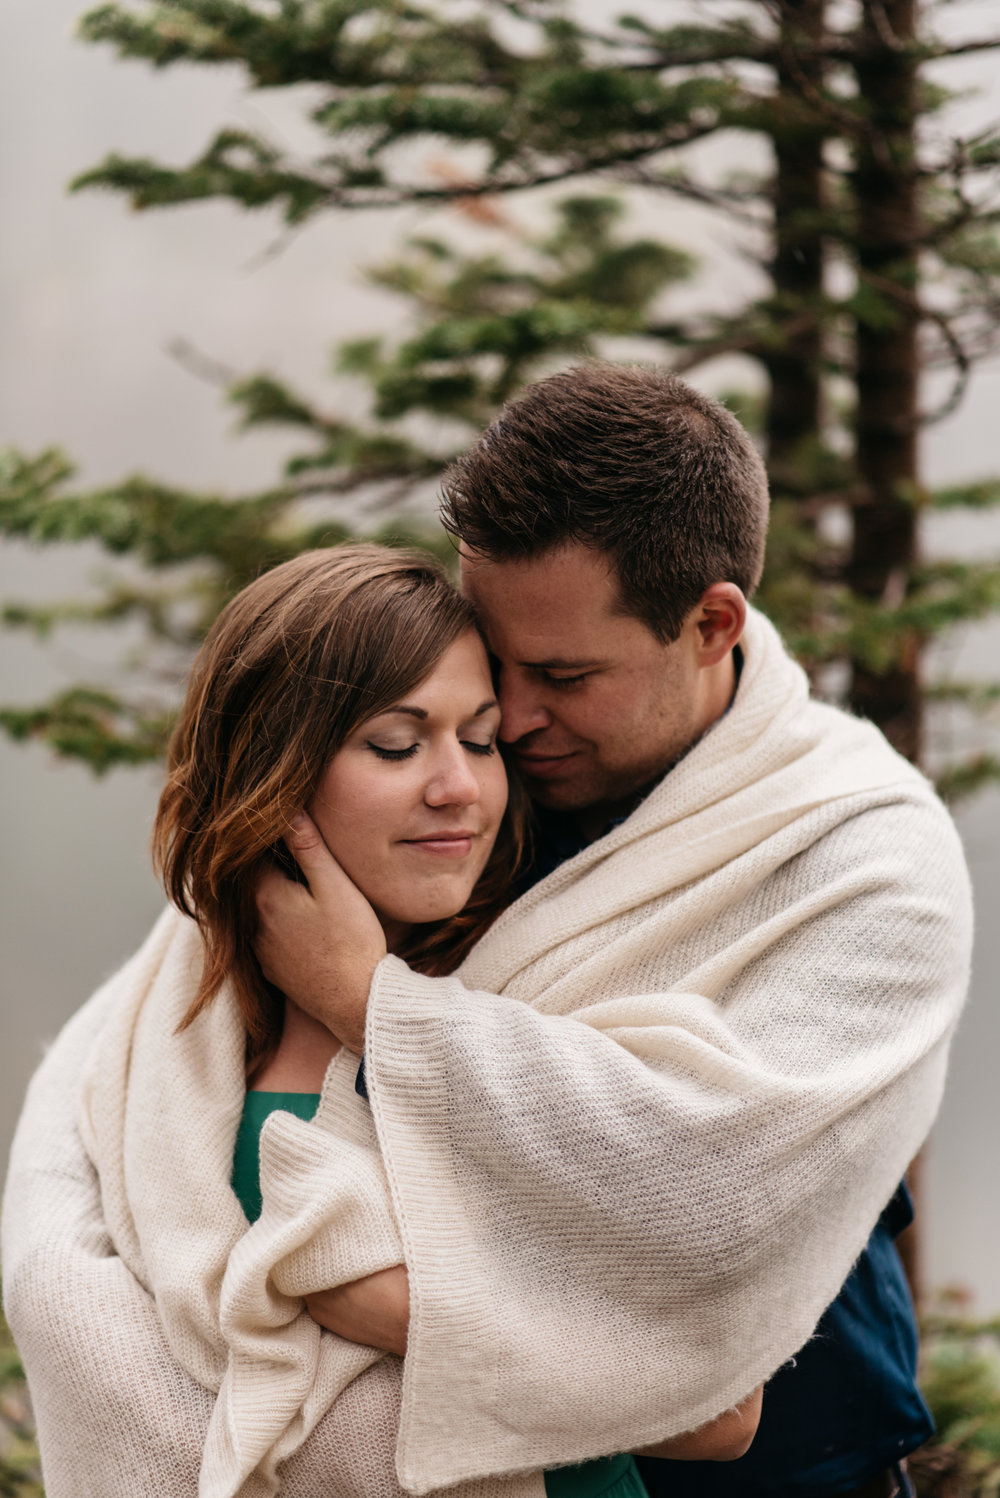 Destination mountain elopement photographer.